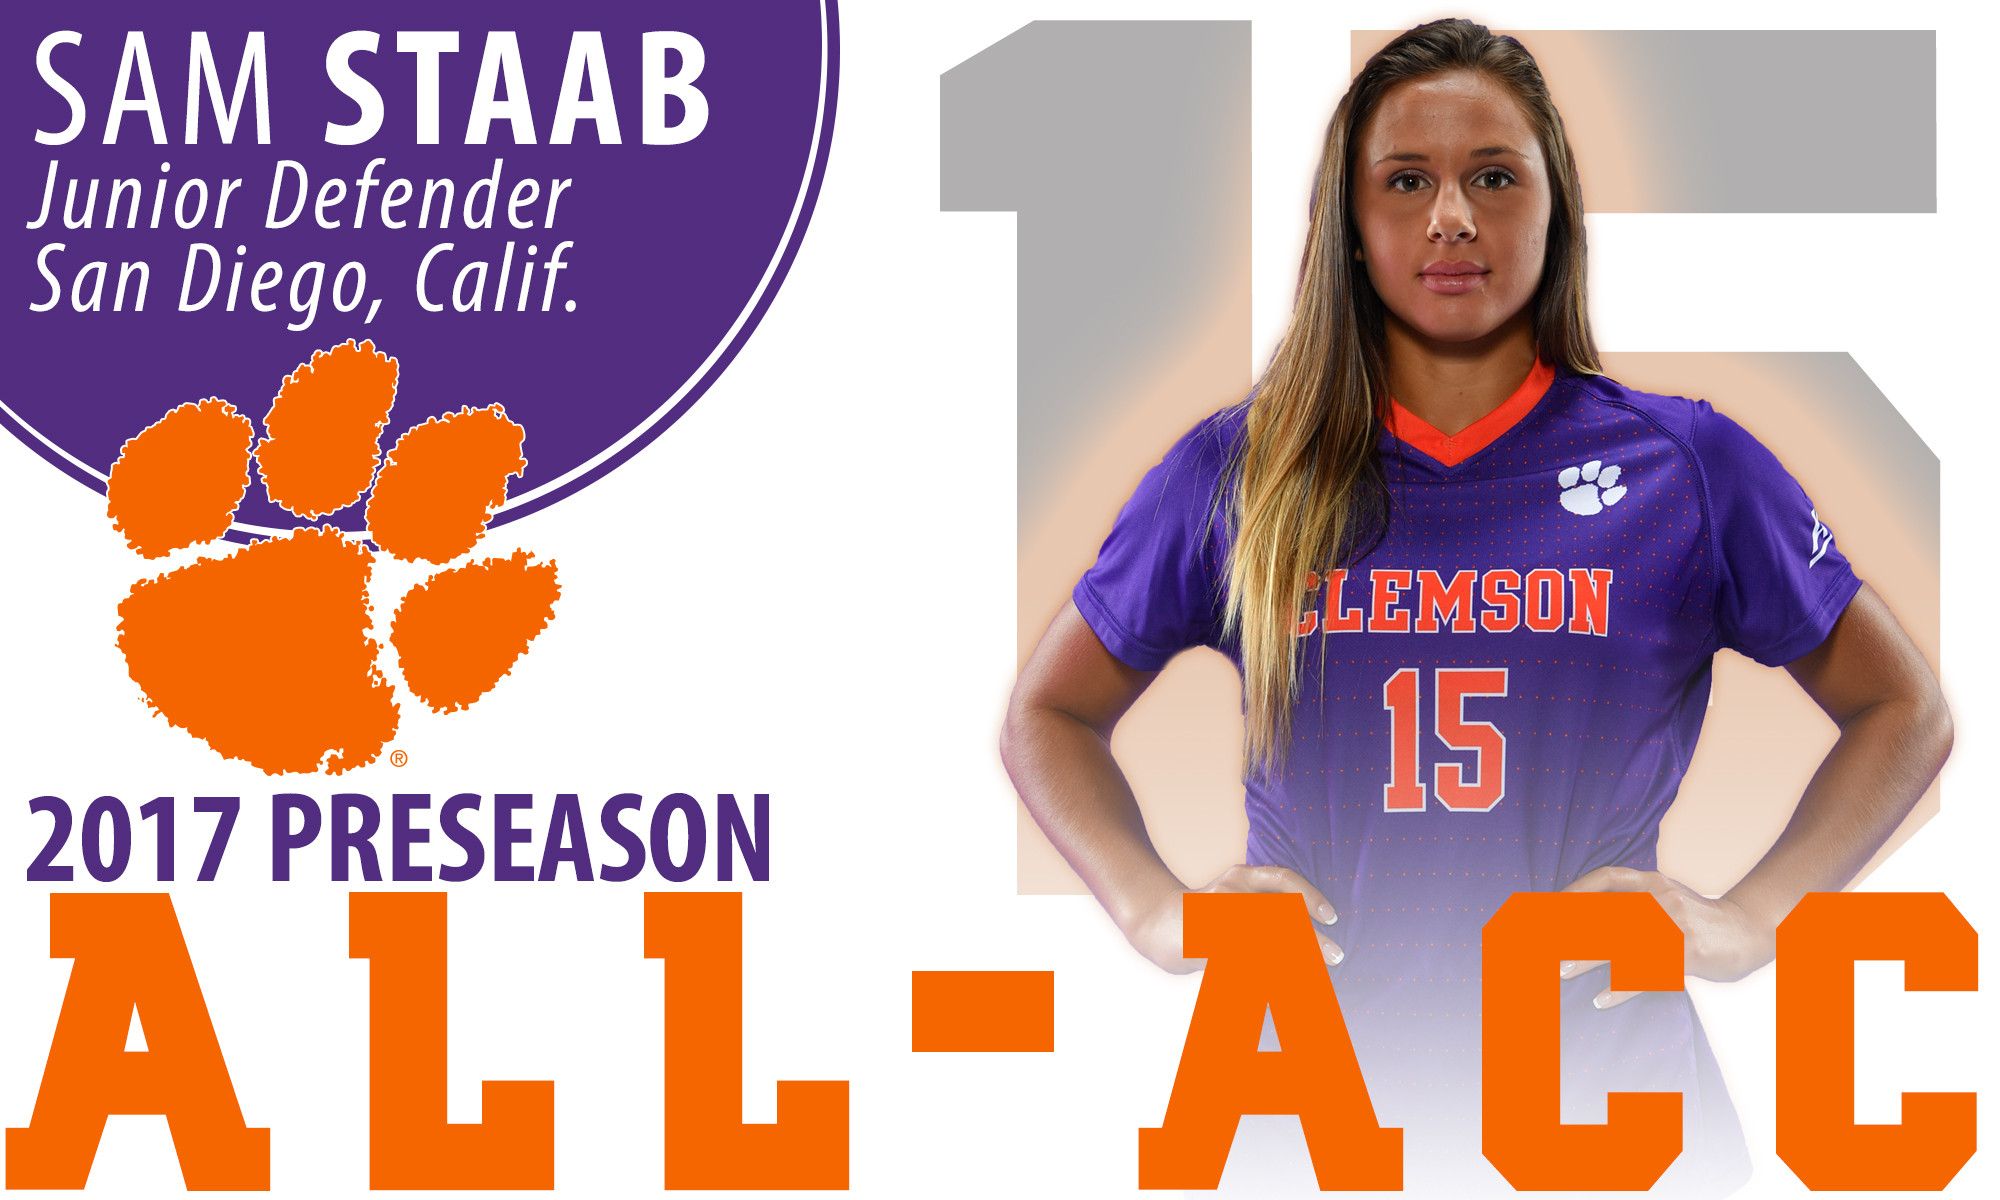 Staab Named to 2017 Preseason All-ACC Team